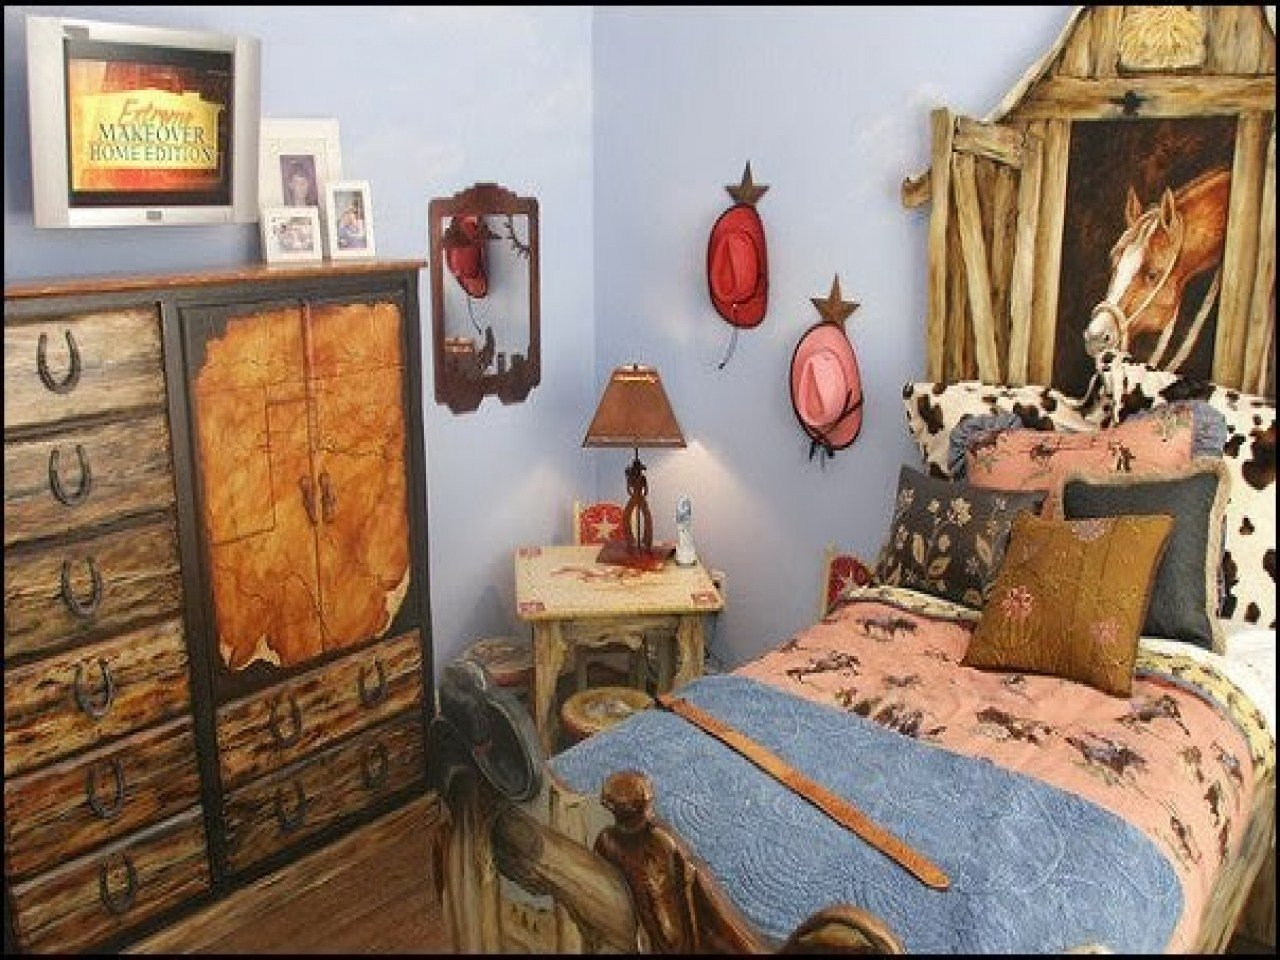 Best Rustic Themed Bedroom Western Theme Bedroom Decor *D*Lt With Pictures